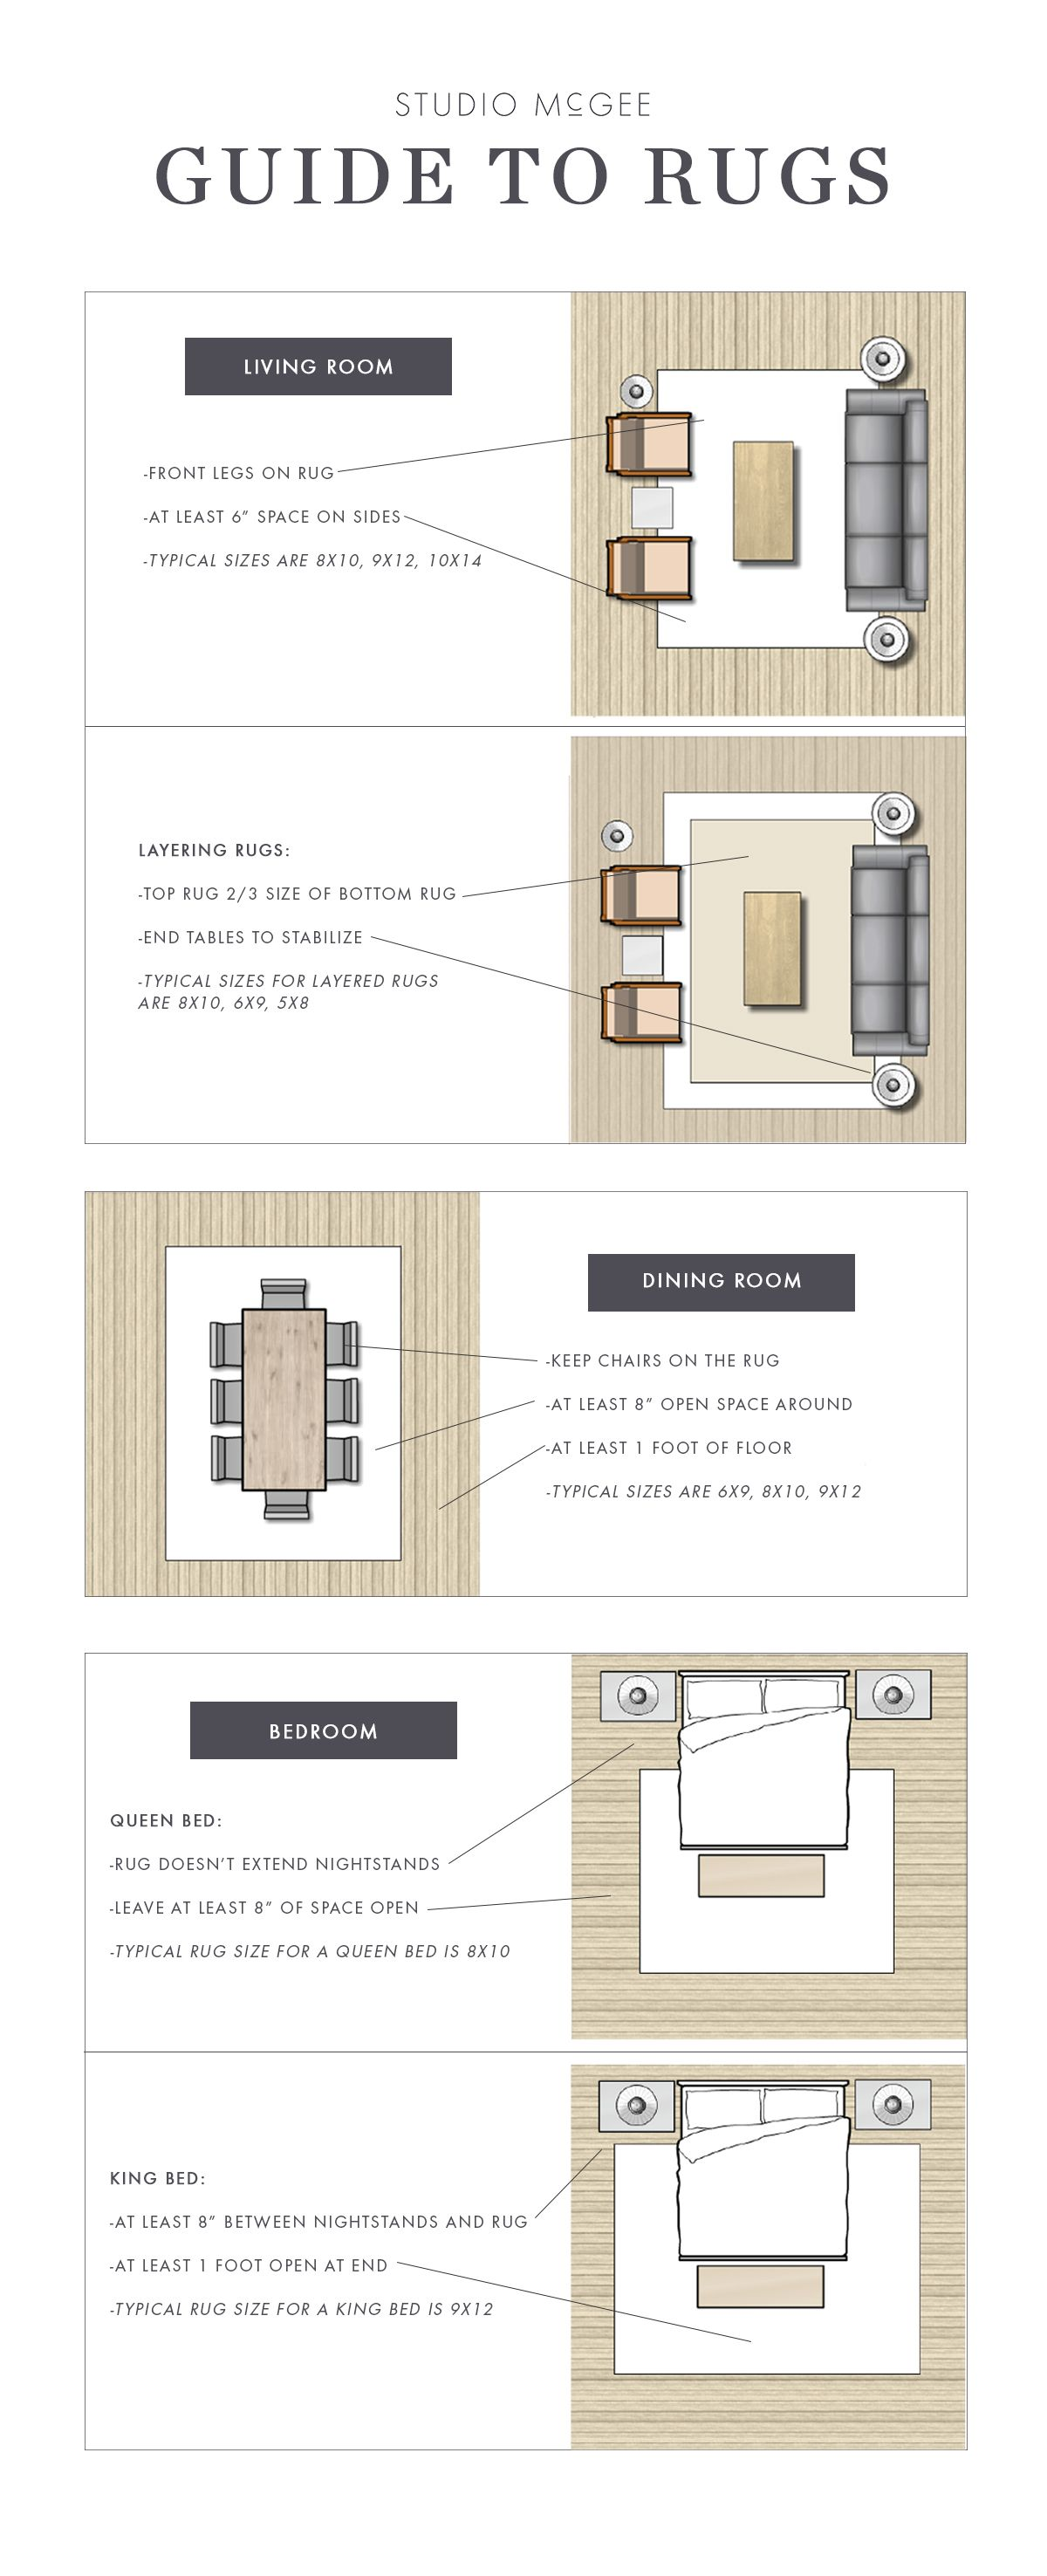 Rug Guide Simple Tips For Each Room Rugs In Living Room Interior Design Tips Traditional Interior Design